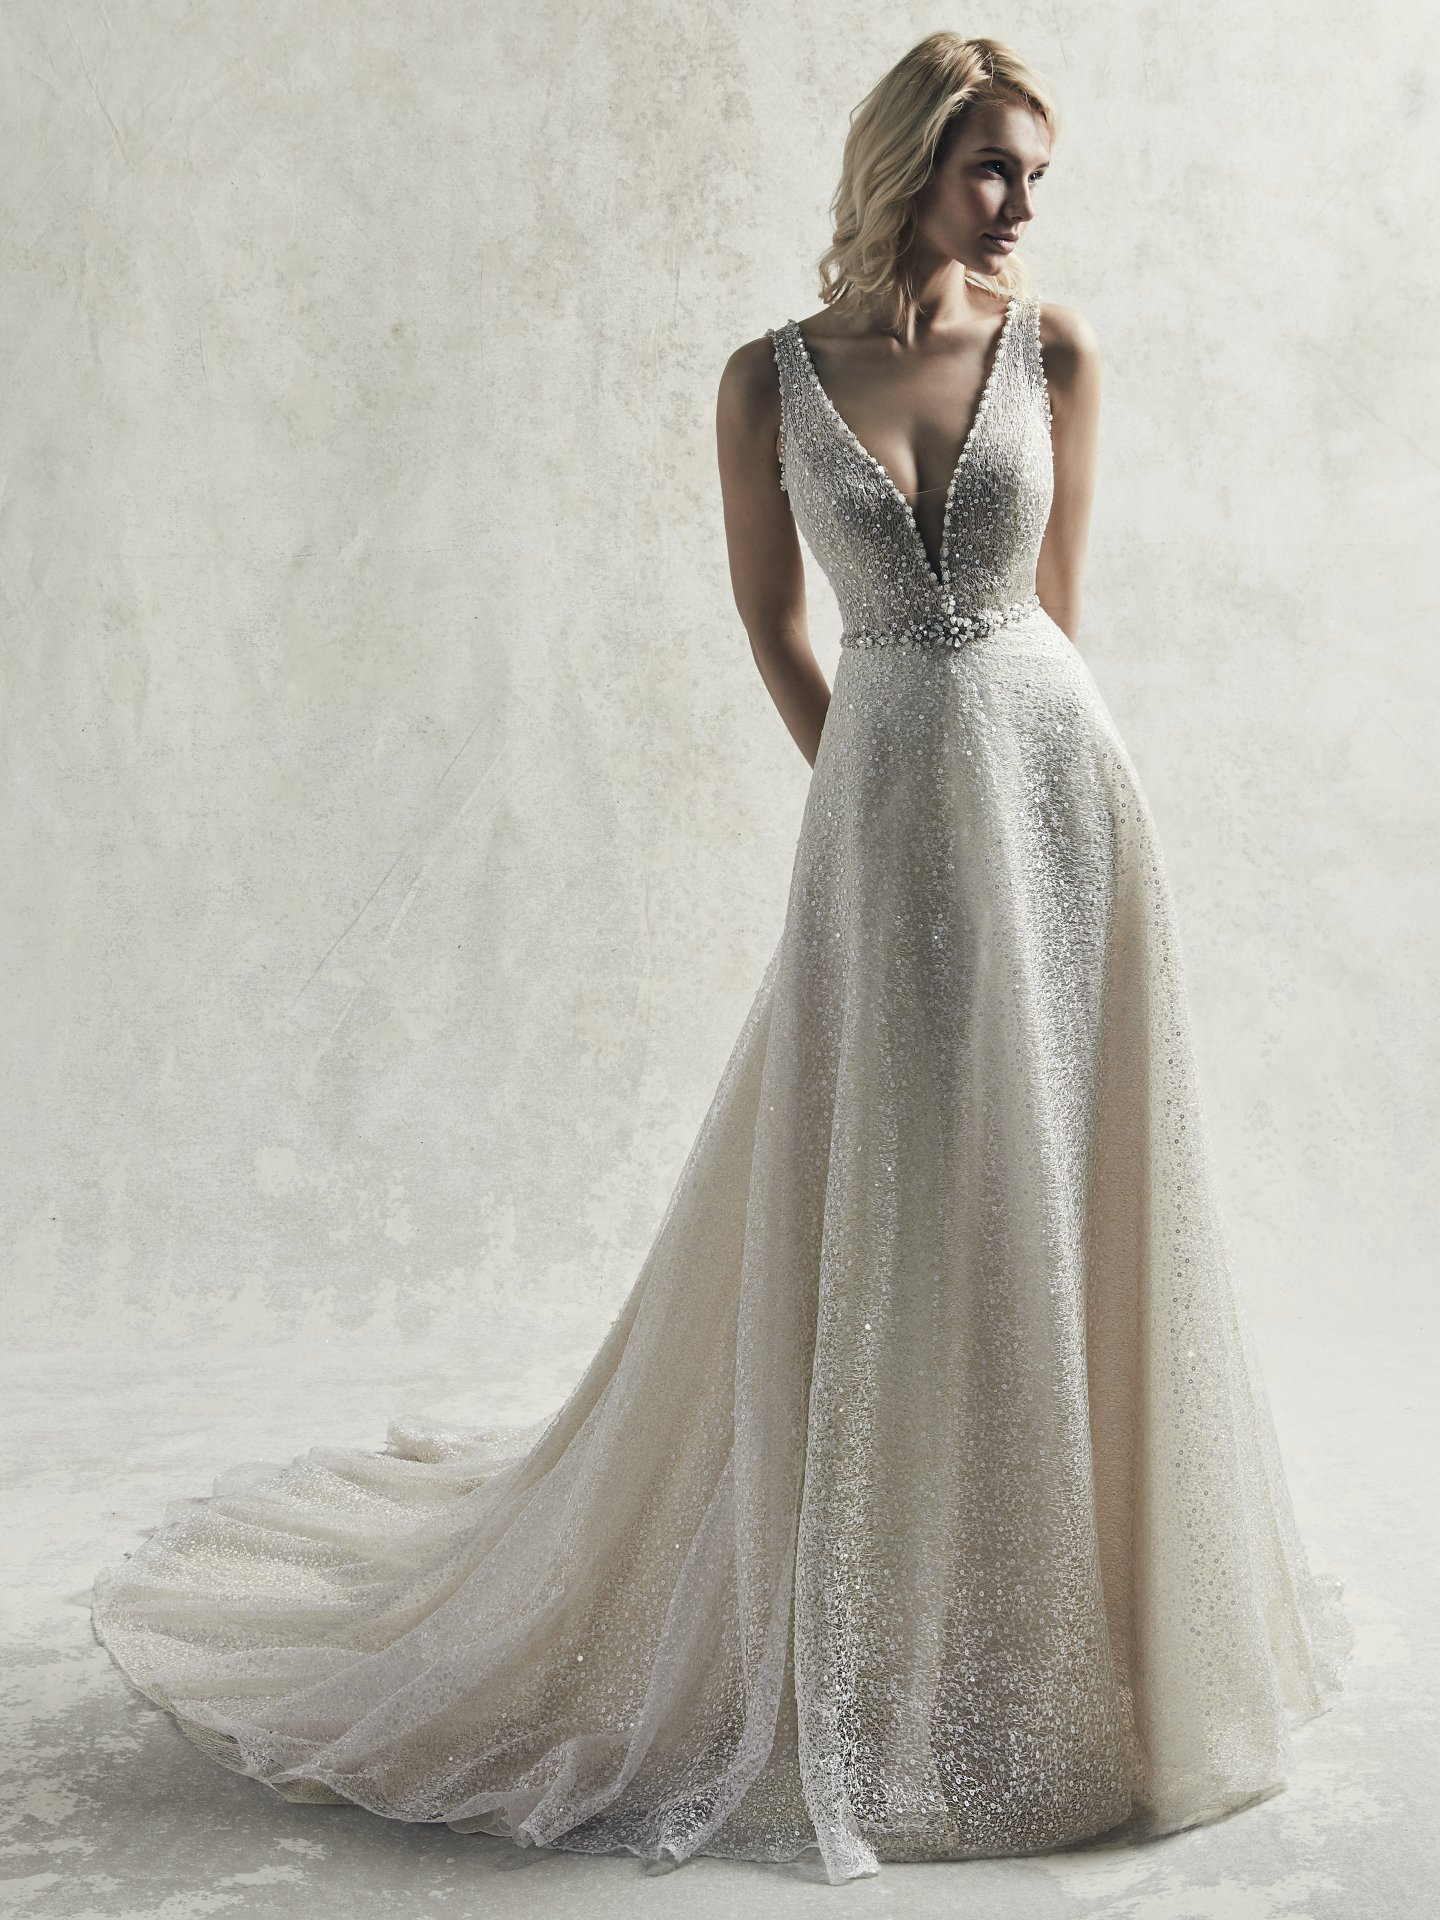 Maggie Sottero/ S.M: JARRET, Light Gold: 36-38